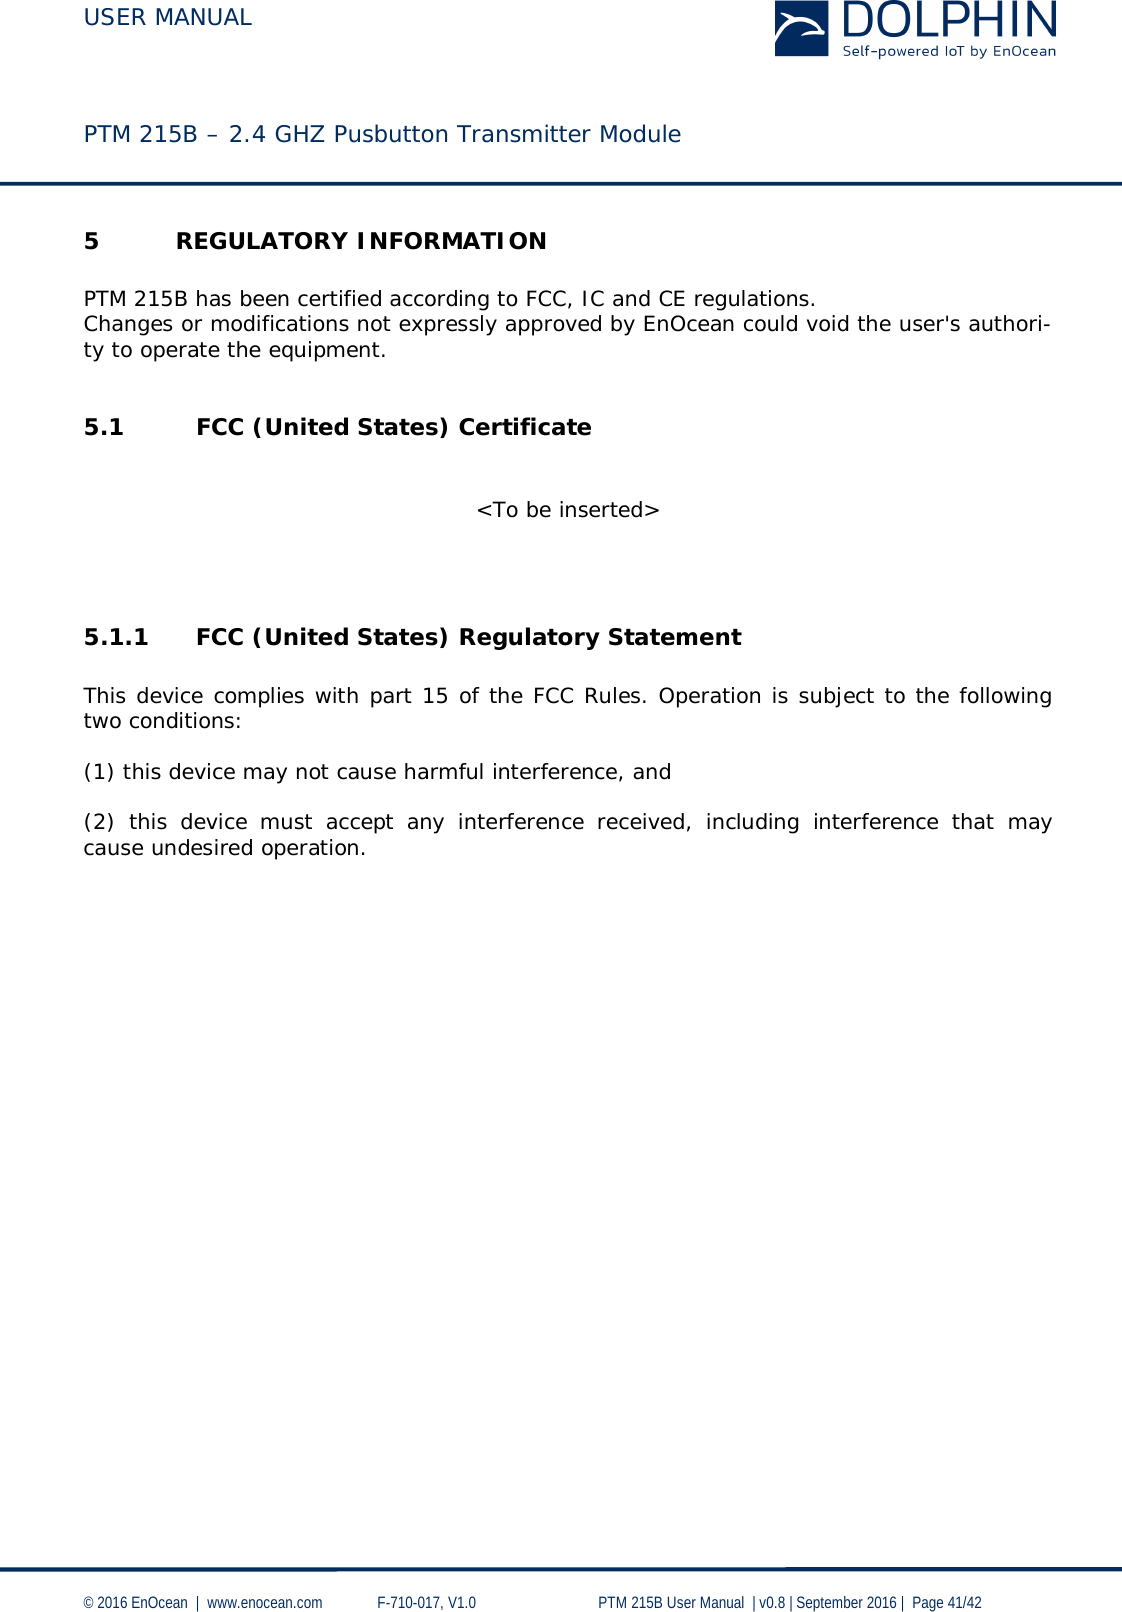 USER MANUAL    PTM 215B – 2.4 GHZ Pusbutton Transmitter Module  © 2016 EnOcean     www.enocean.com   F-710-017, V1.0        PTM 215B User Manual    v0.8   September 2016    Page 41/42  5 REGULATORY INFORMATION  PTM 215B has been certified according to FCC, IC and CE regulations. Changes or modifications not expressly approved by EnOcean could void the user's authori-ty to operate the equipment.  5.1 FCC (United States) Certificate   <To be inserted>    5.1.1 FCC (United States) Regulatory Statement  This device complies with part 15 of the FCC Rules. Operation is subject to the following two conditions:   (1) this device may not cause harmful interference, and   (2) this device must accept any interference received, including interference that may cause undesired operation.